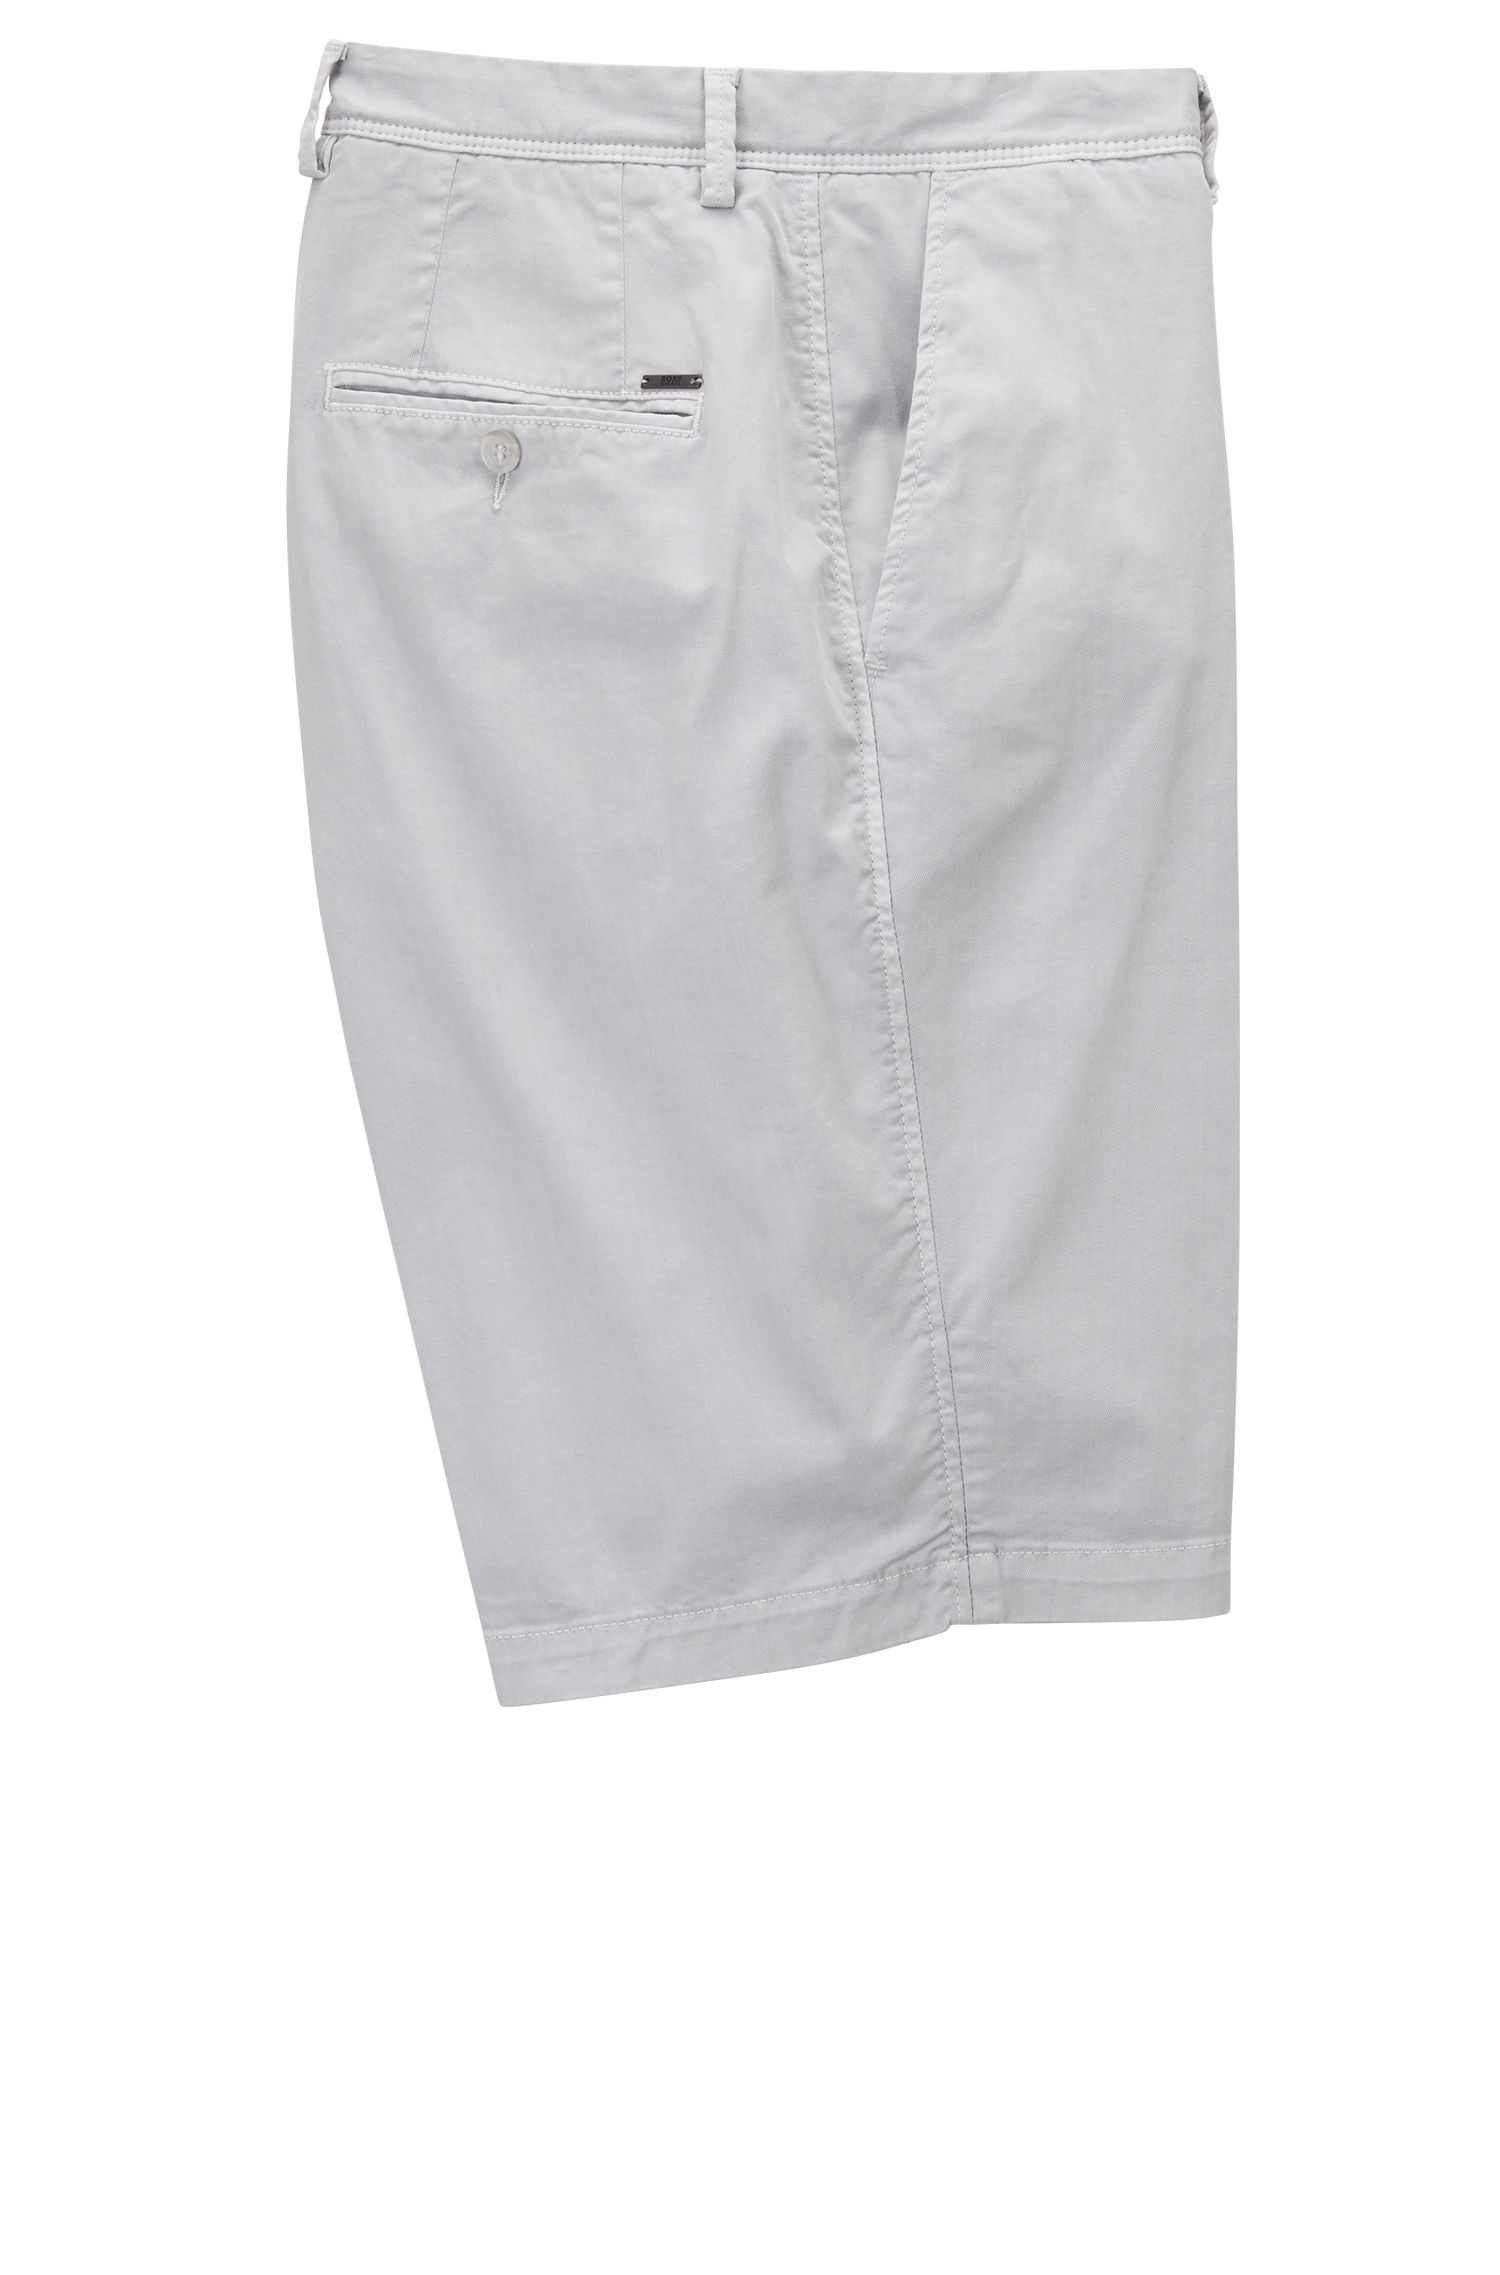 Pigmentgefärbte Regular-Fit Chino-Shorts, Hellgrau